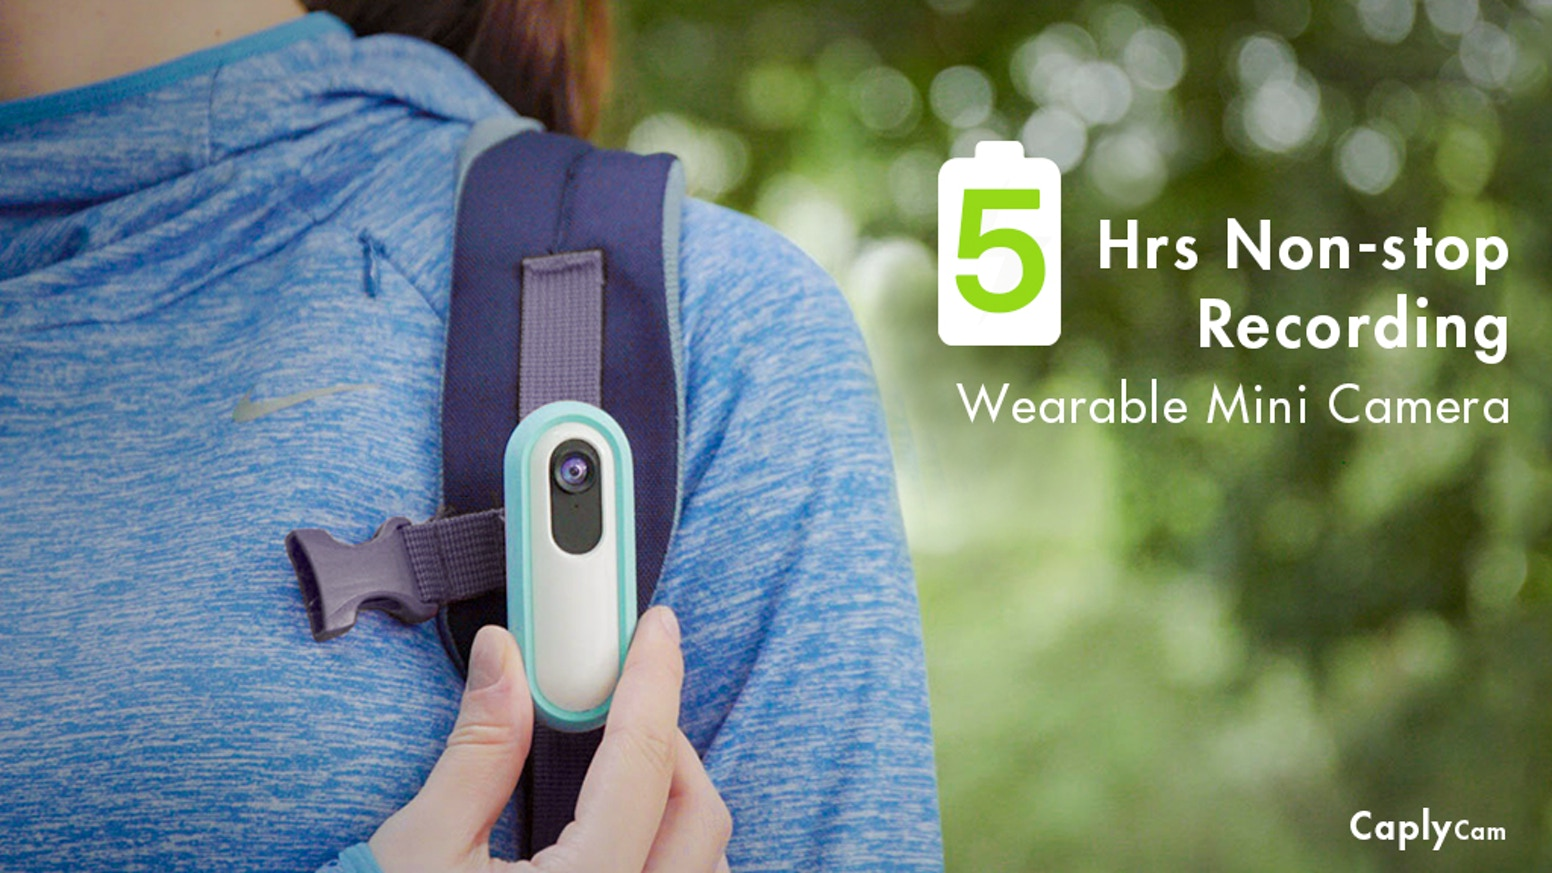 Caply tends to be the world's most lasting wearable camera that can continuously record for more than 5 hours of videos.